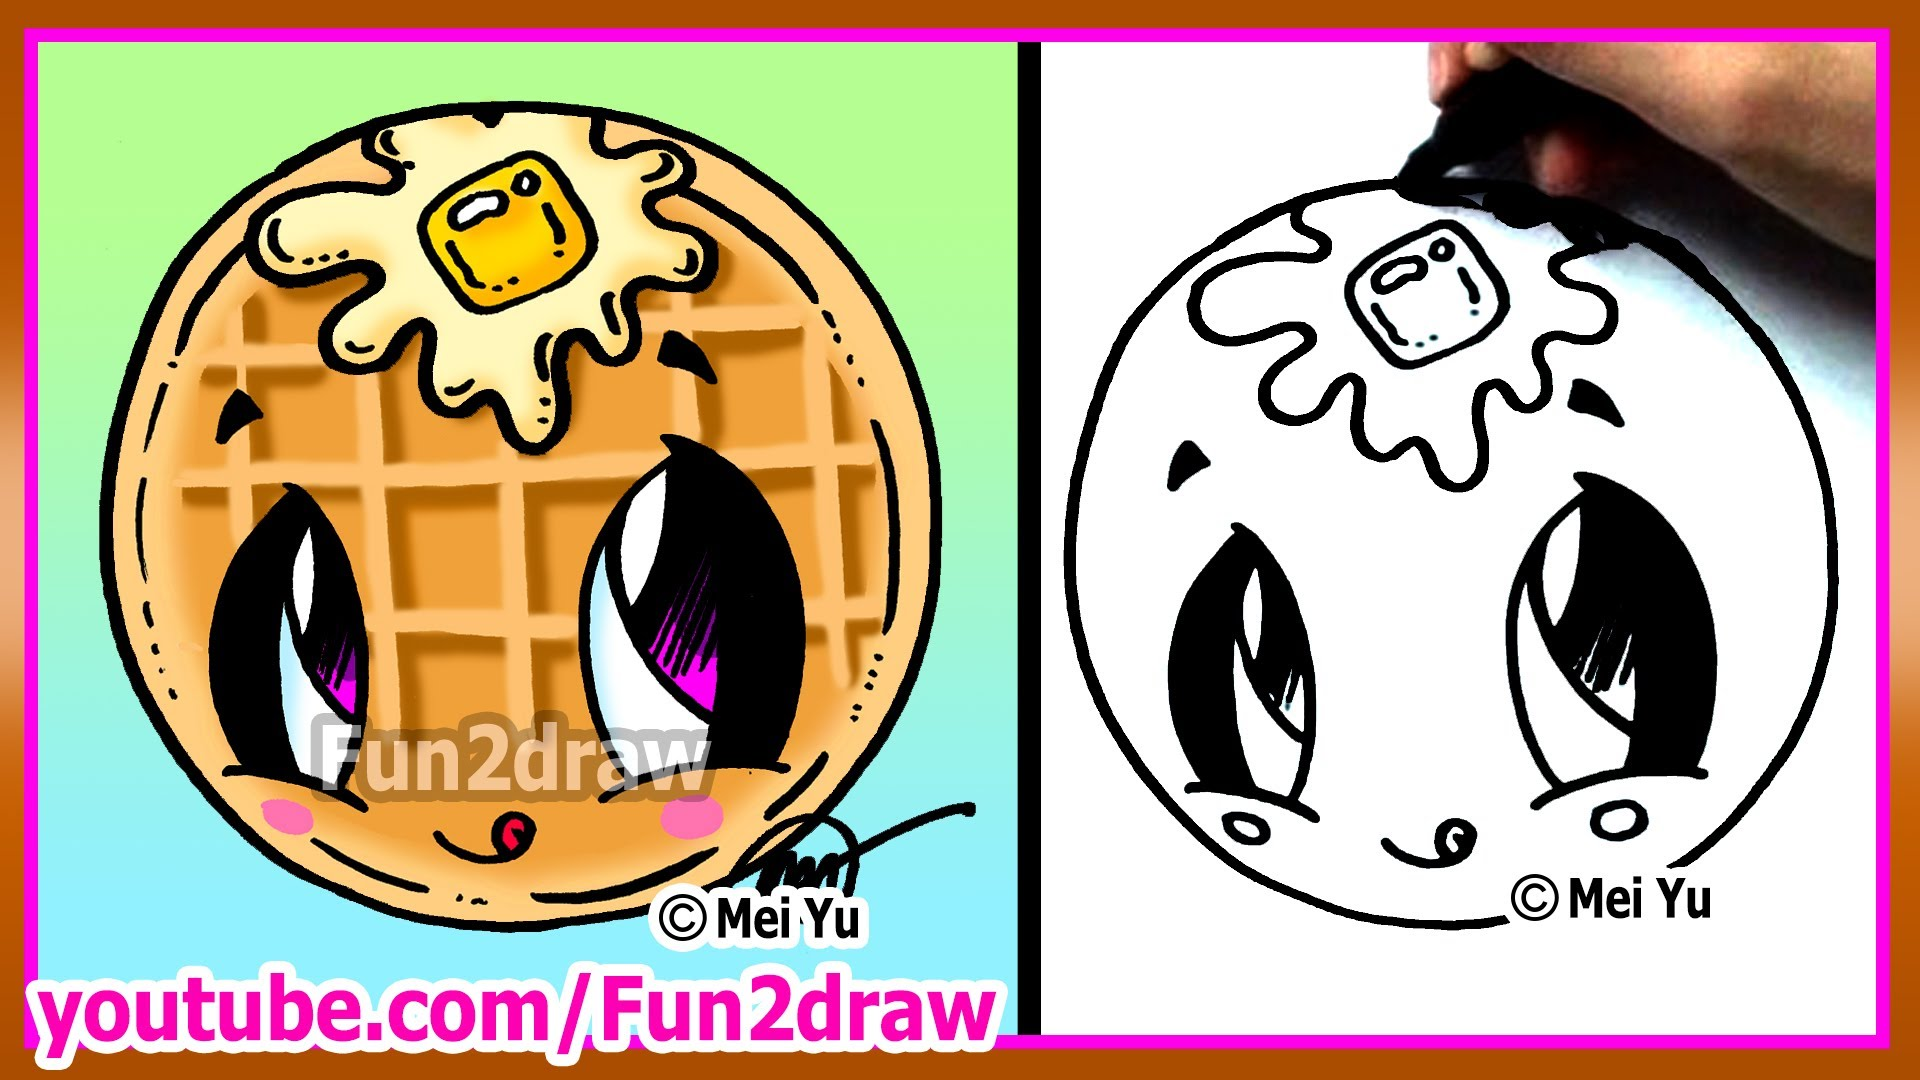 Drawn tacos fun2draw YouTube How Cute Draw Waffle